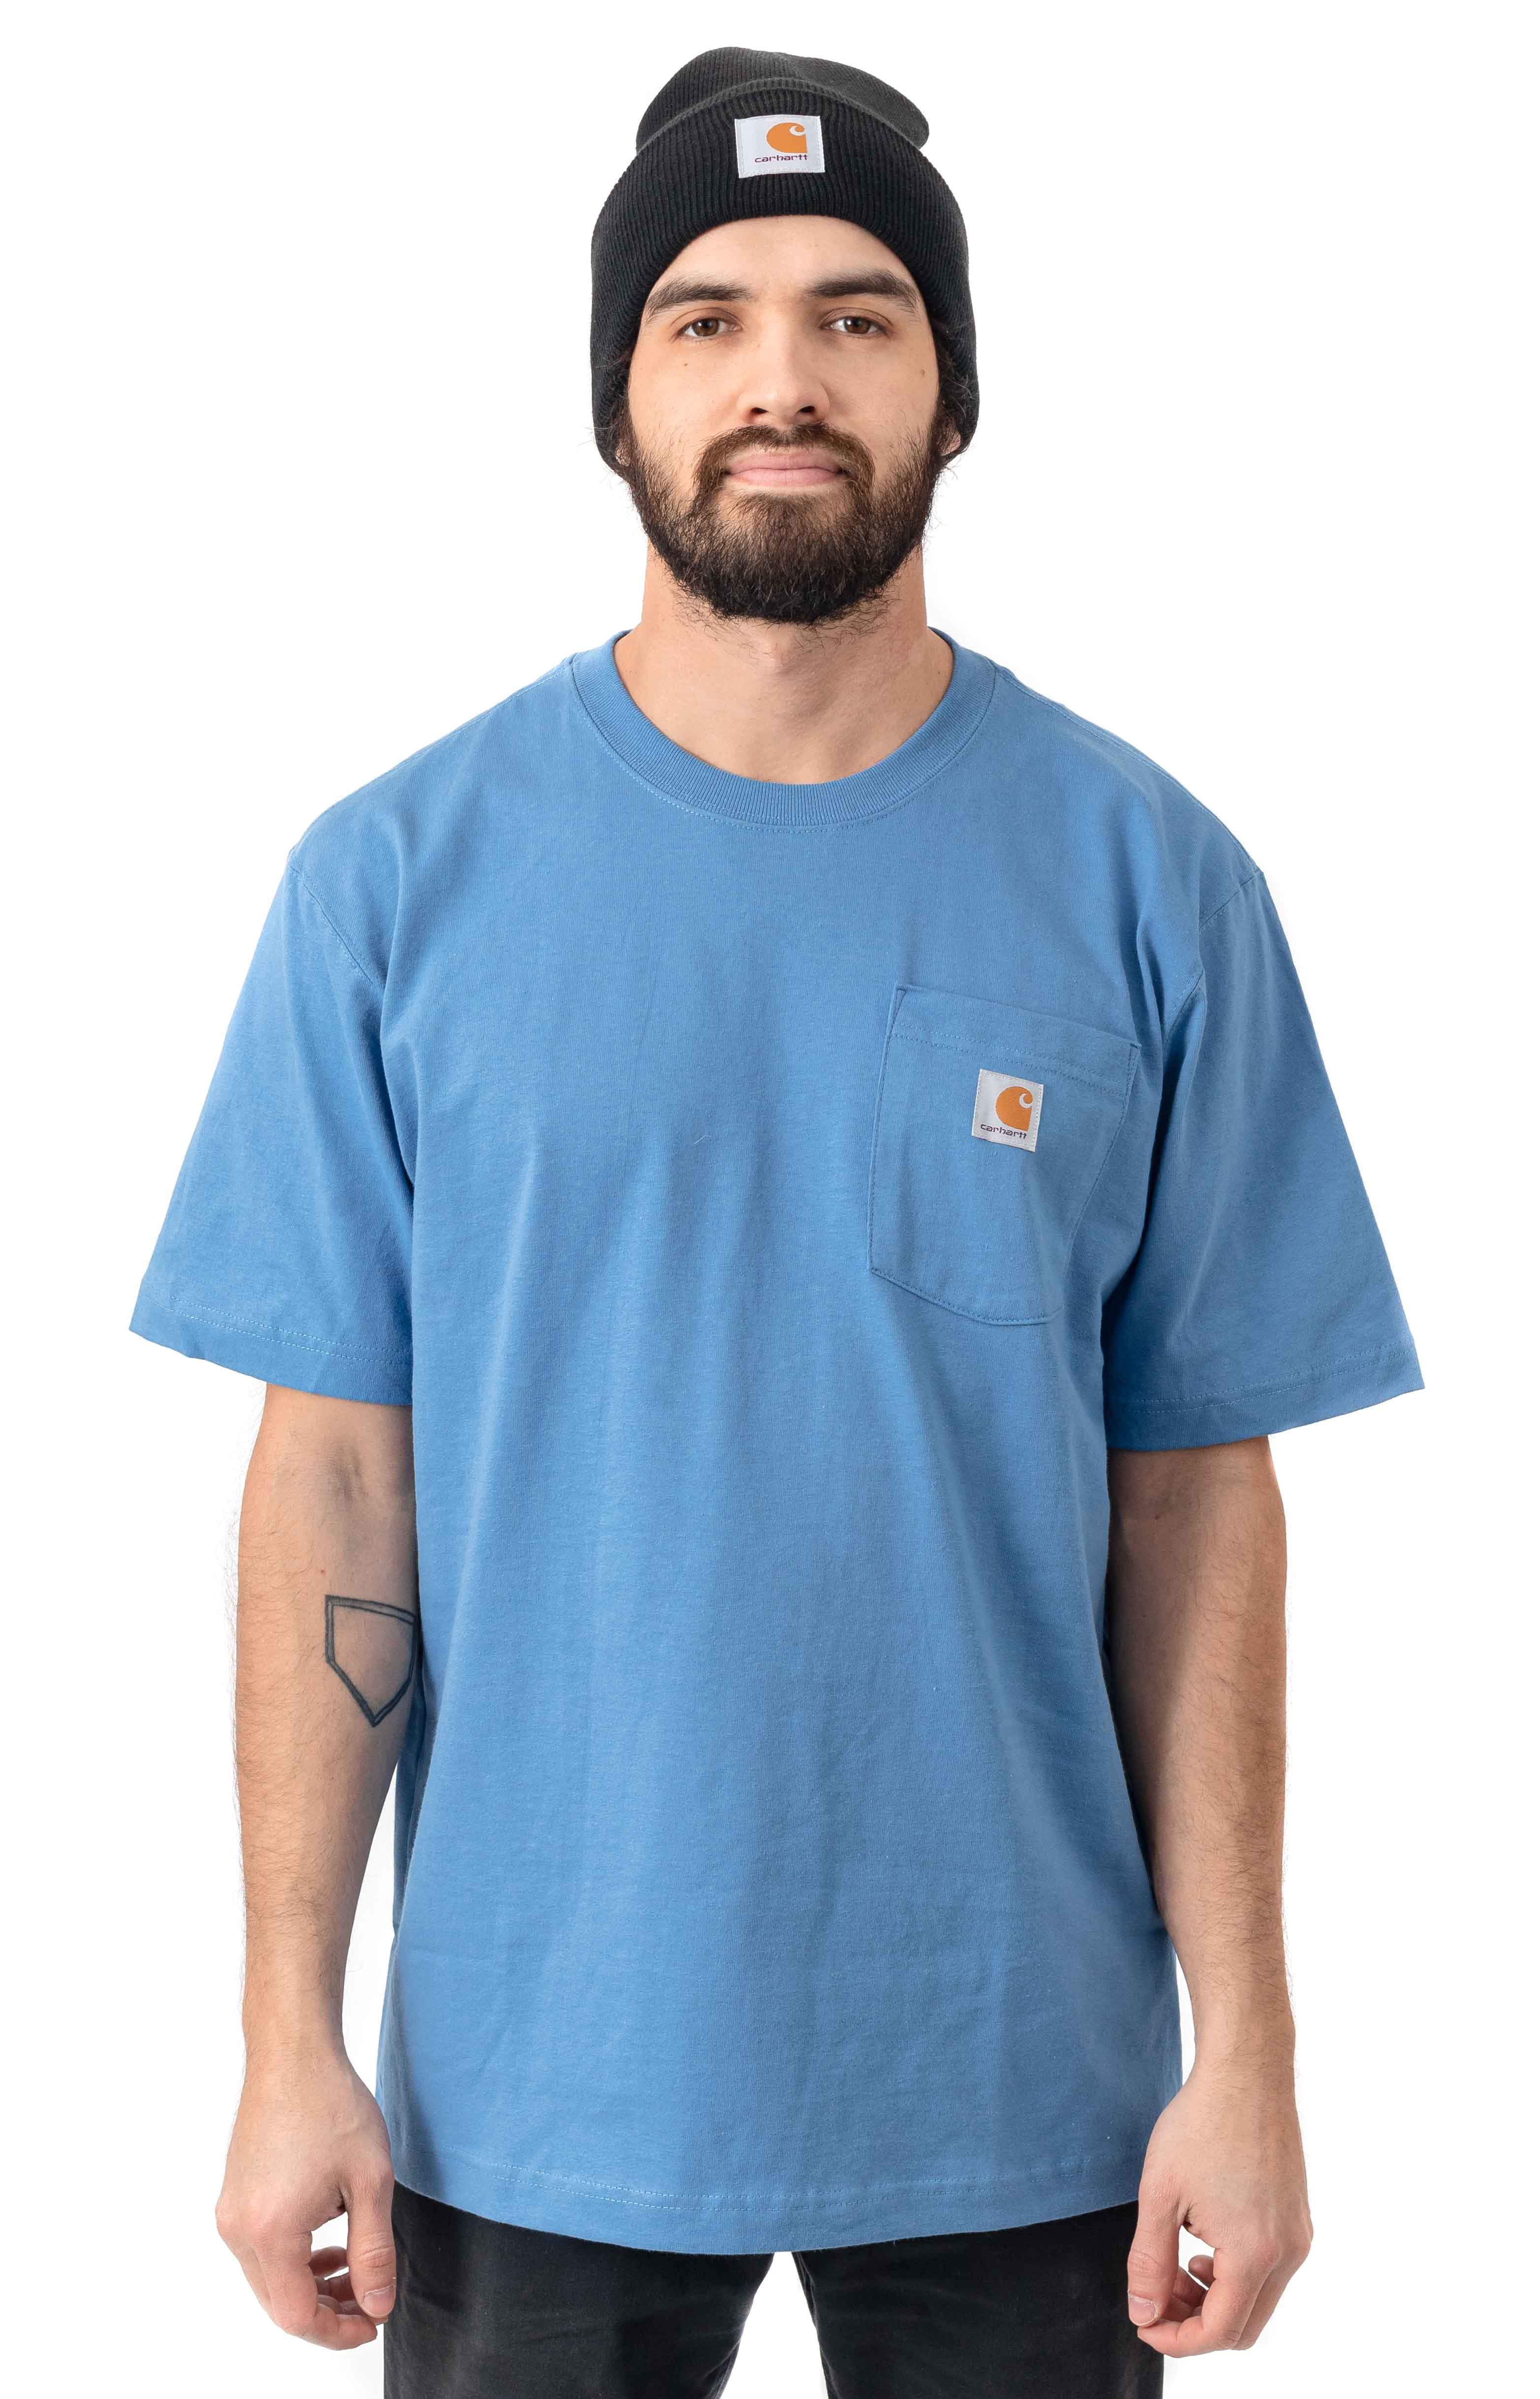 (K87) Workwear Pocket T-Shirt - French Blue